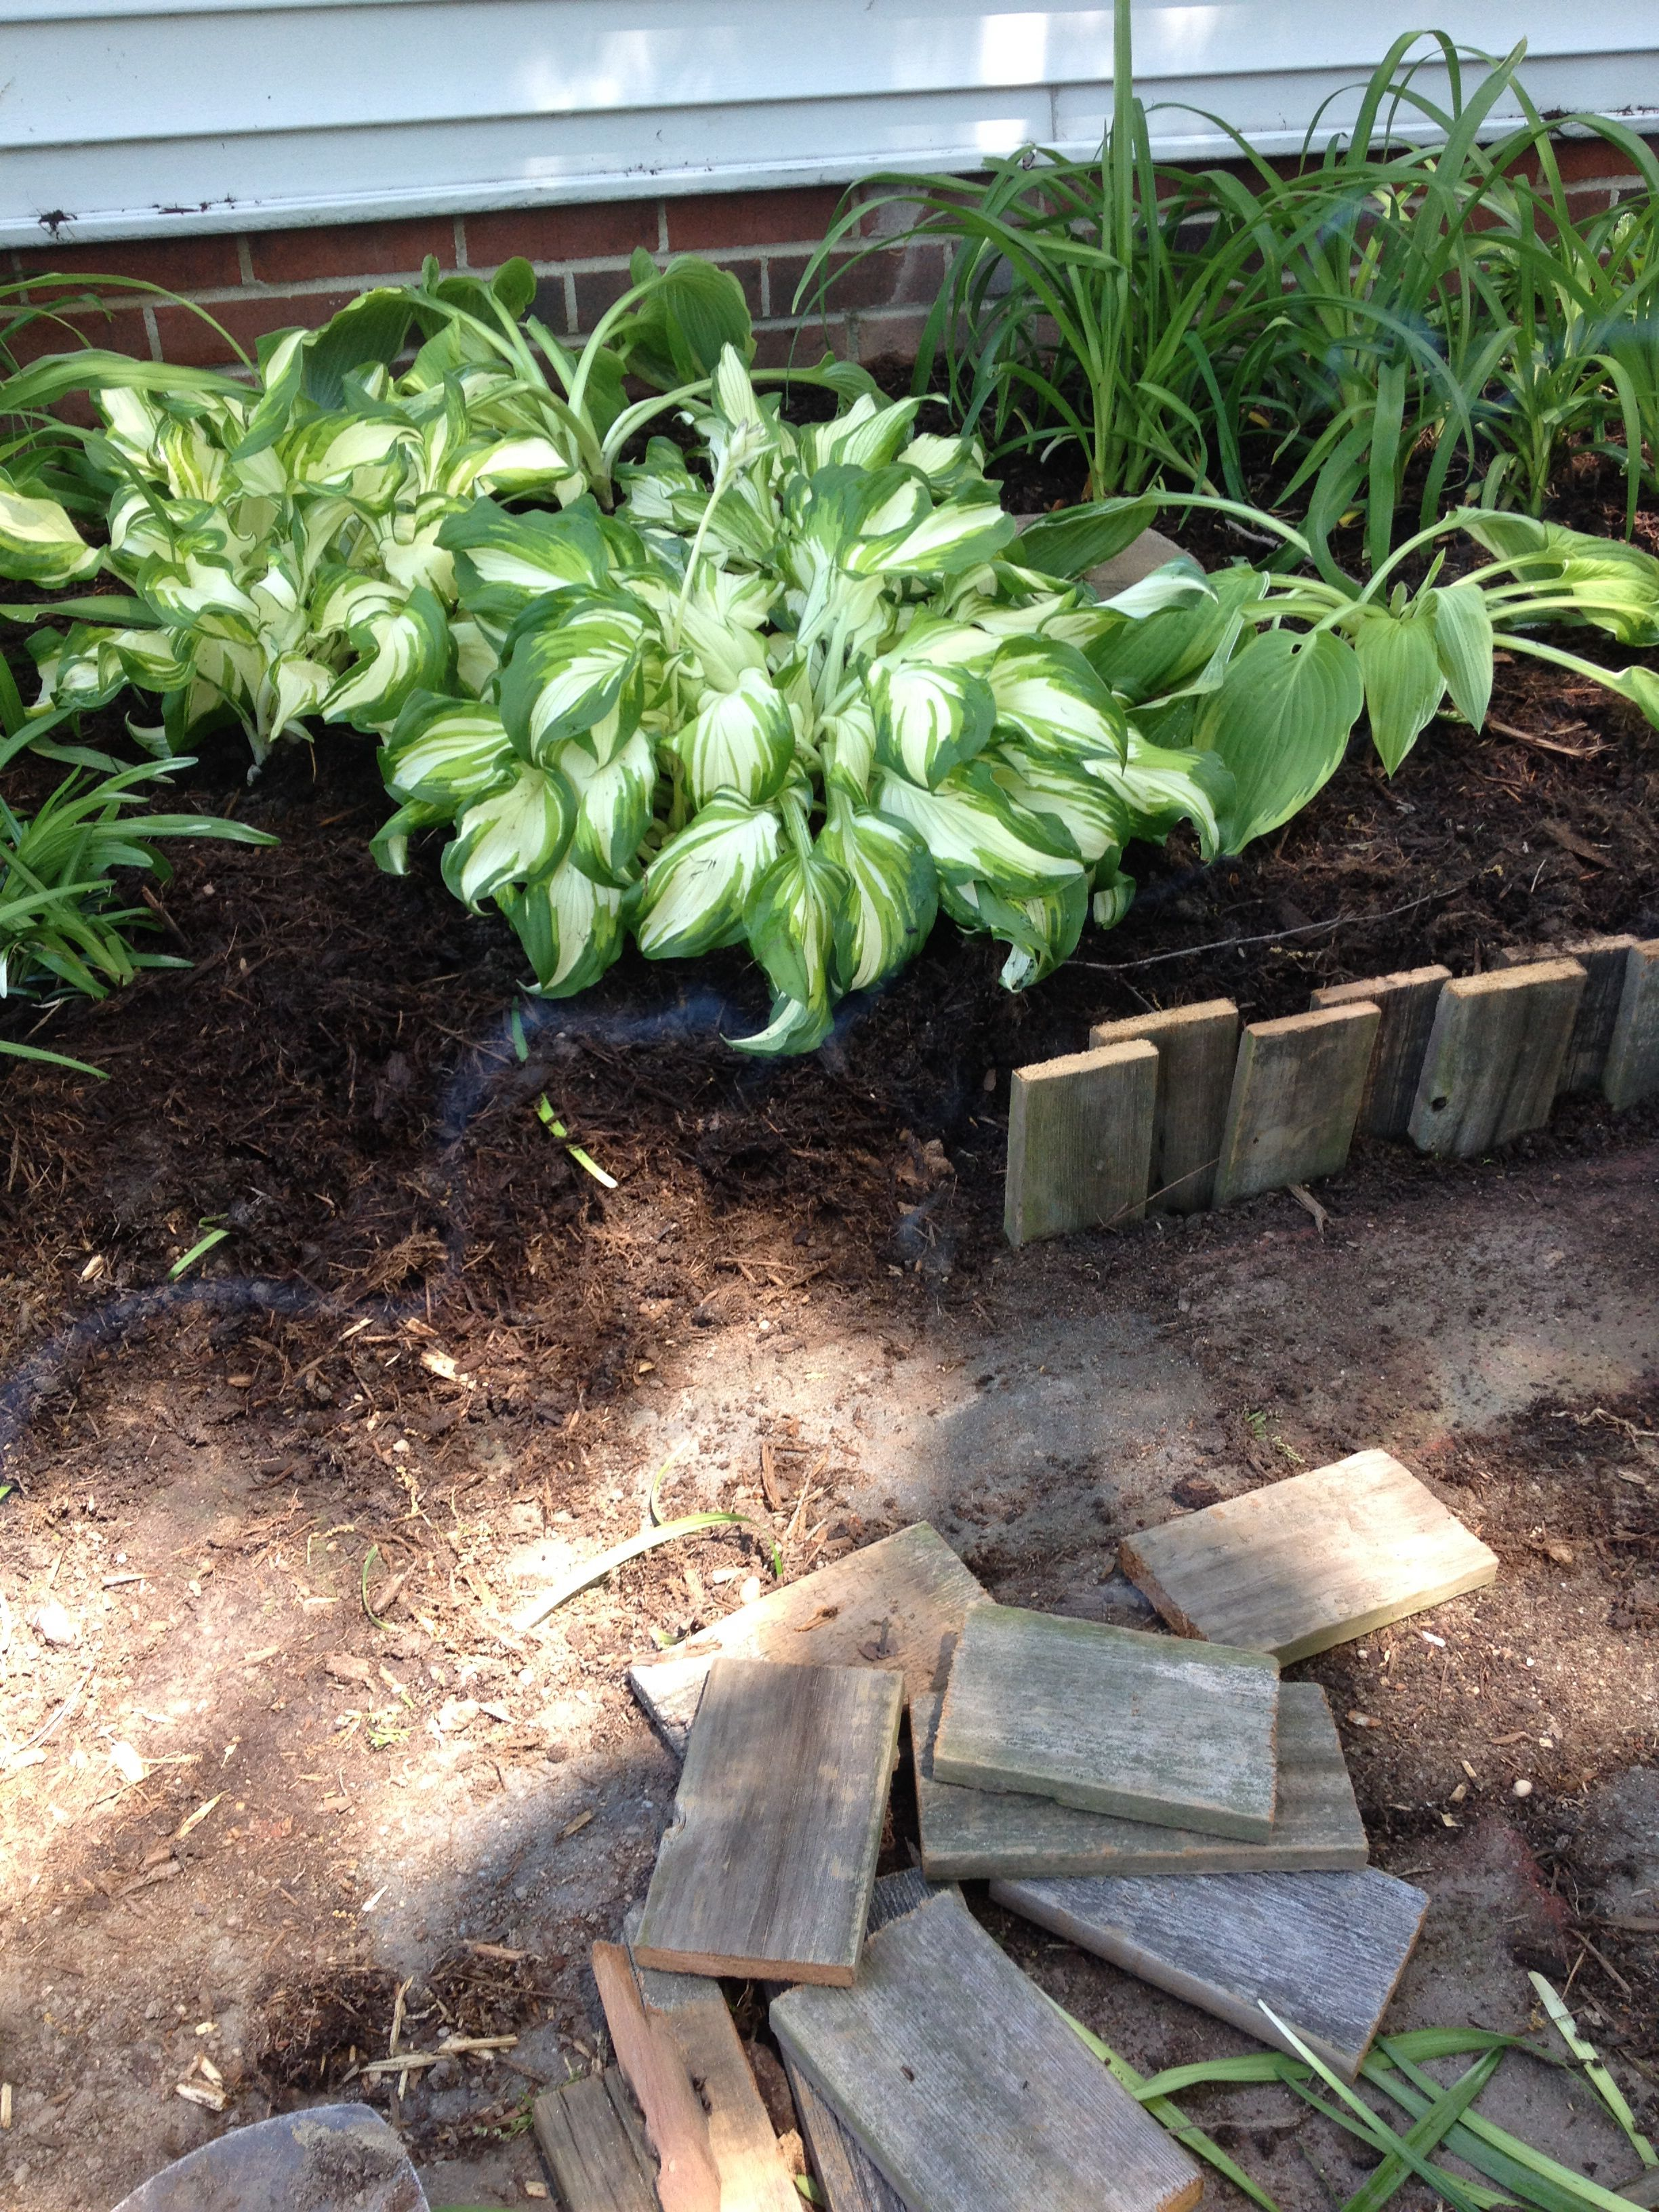 Eleven interesting garden bed edging ideas | Pinterest | Pallet wood ...